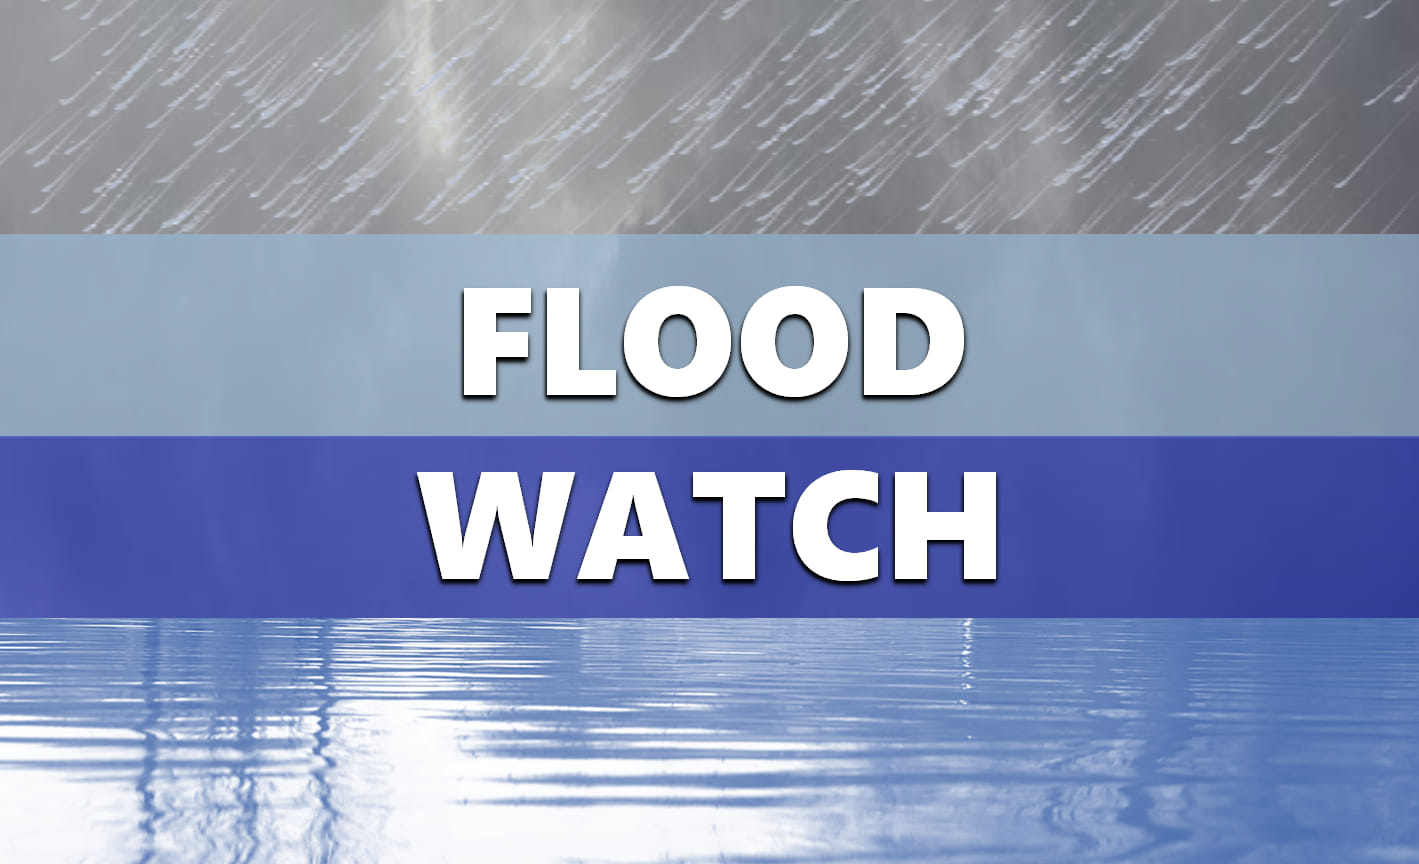 ALERT:  Flood Watch in Effect Through 1 p.m. Tuesday for the Entire Listening Area